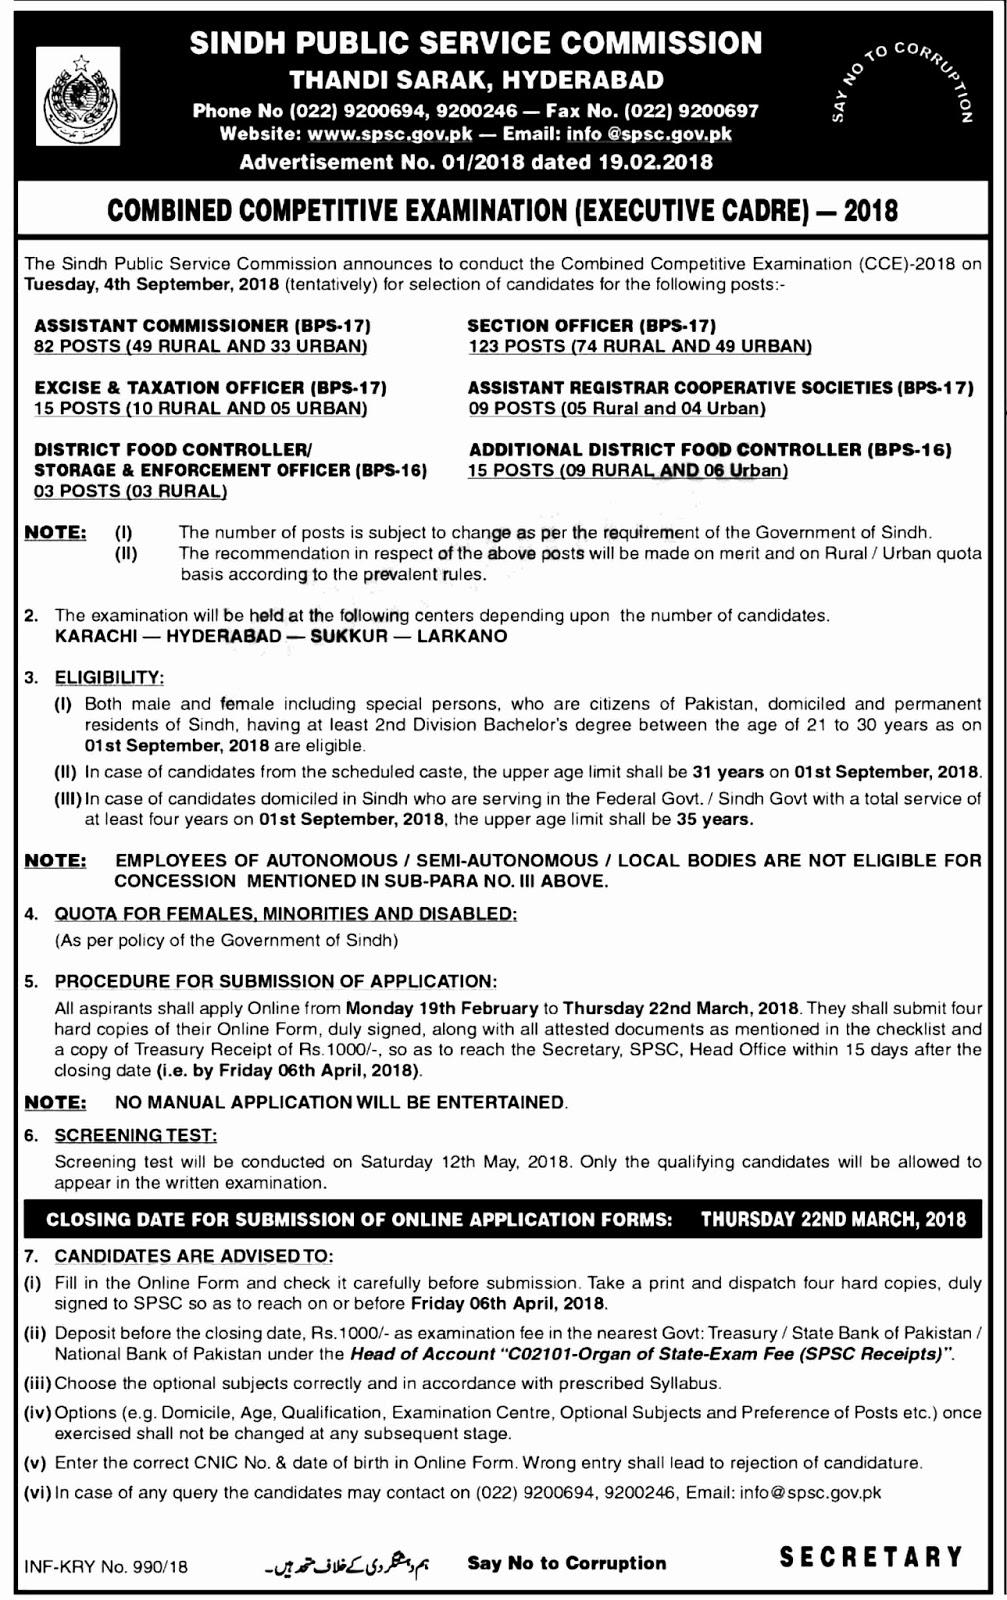 Jobs In SPSC Sindh Public Service Commission Feb 2018